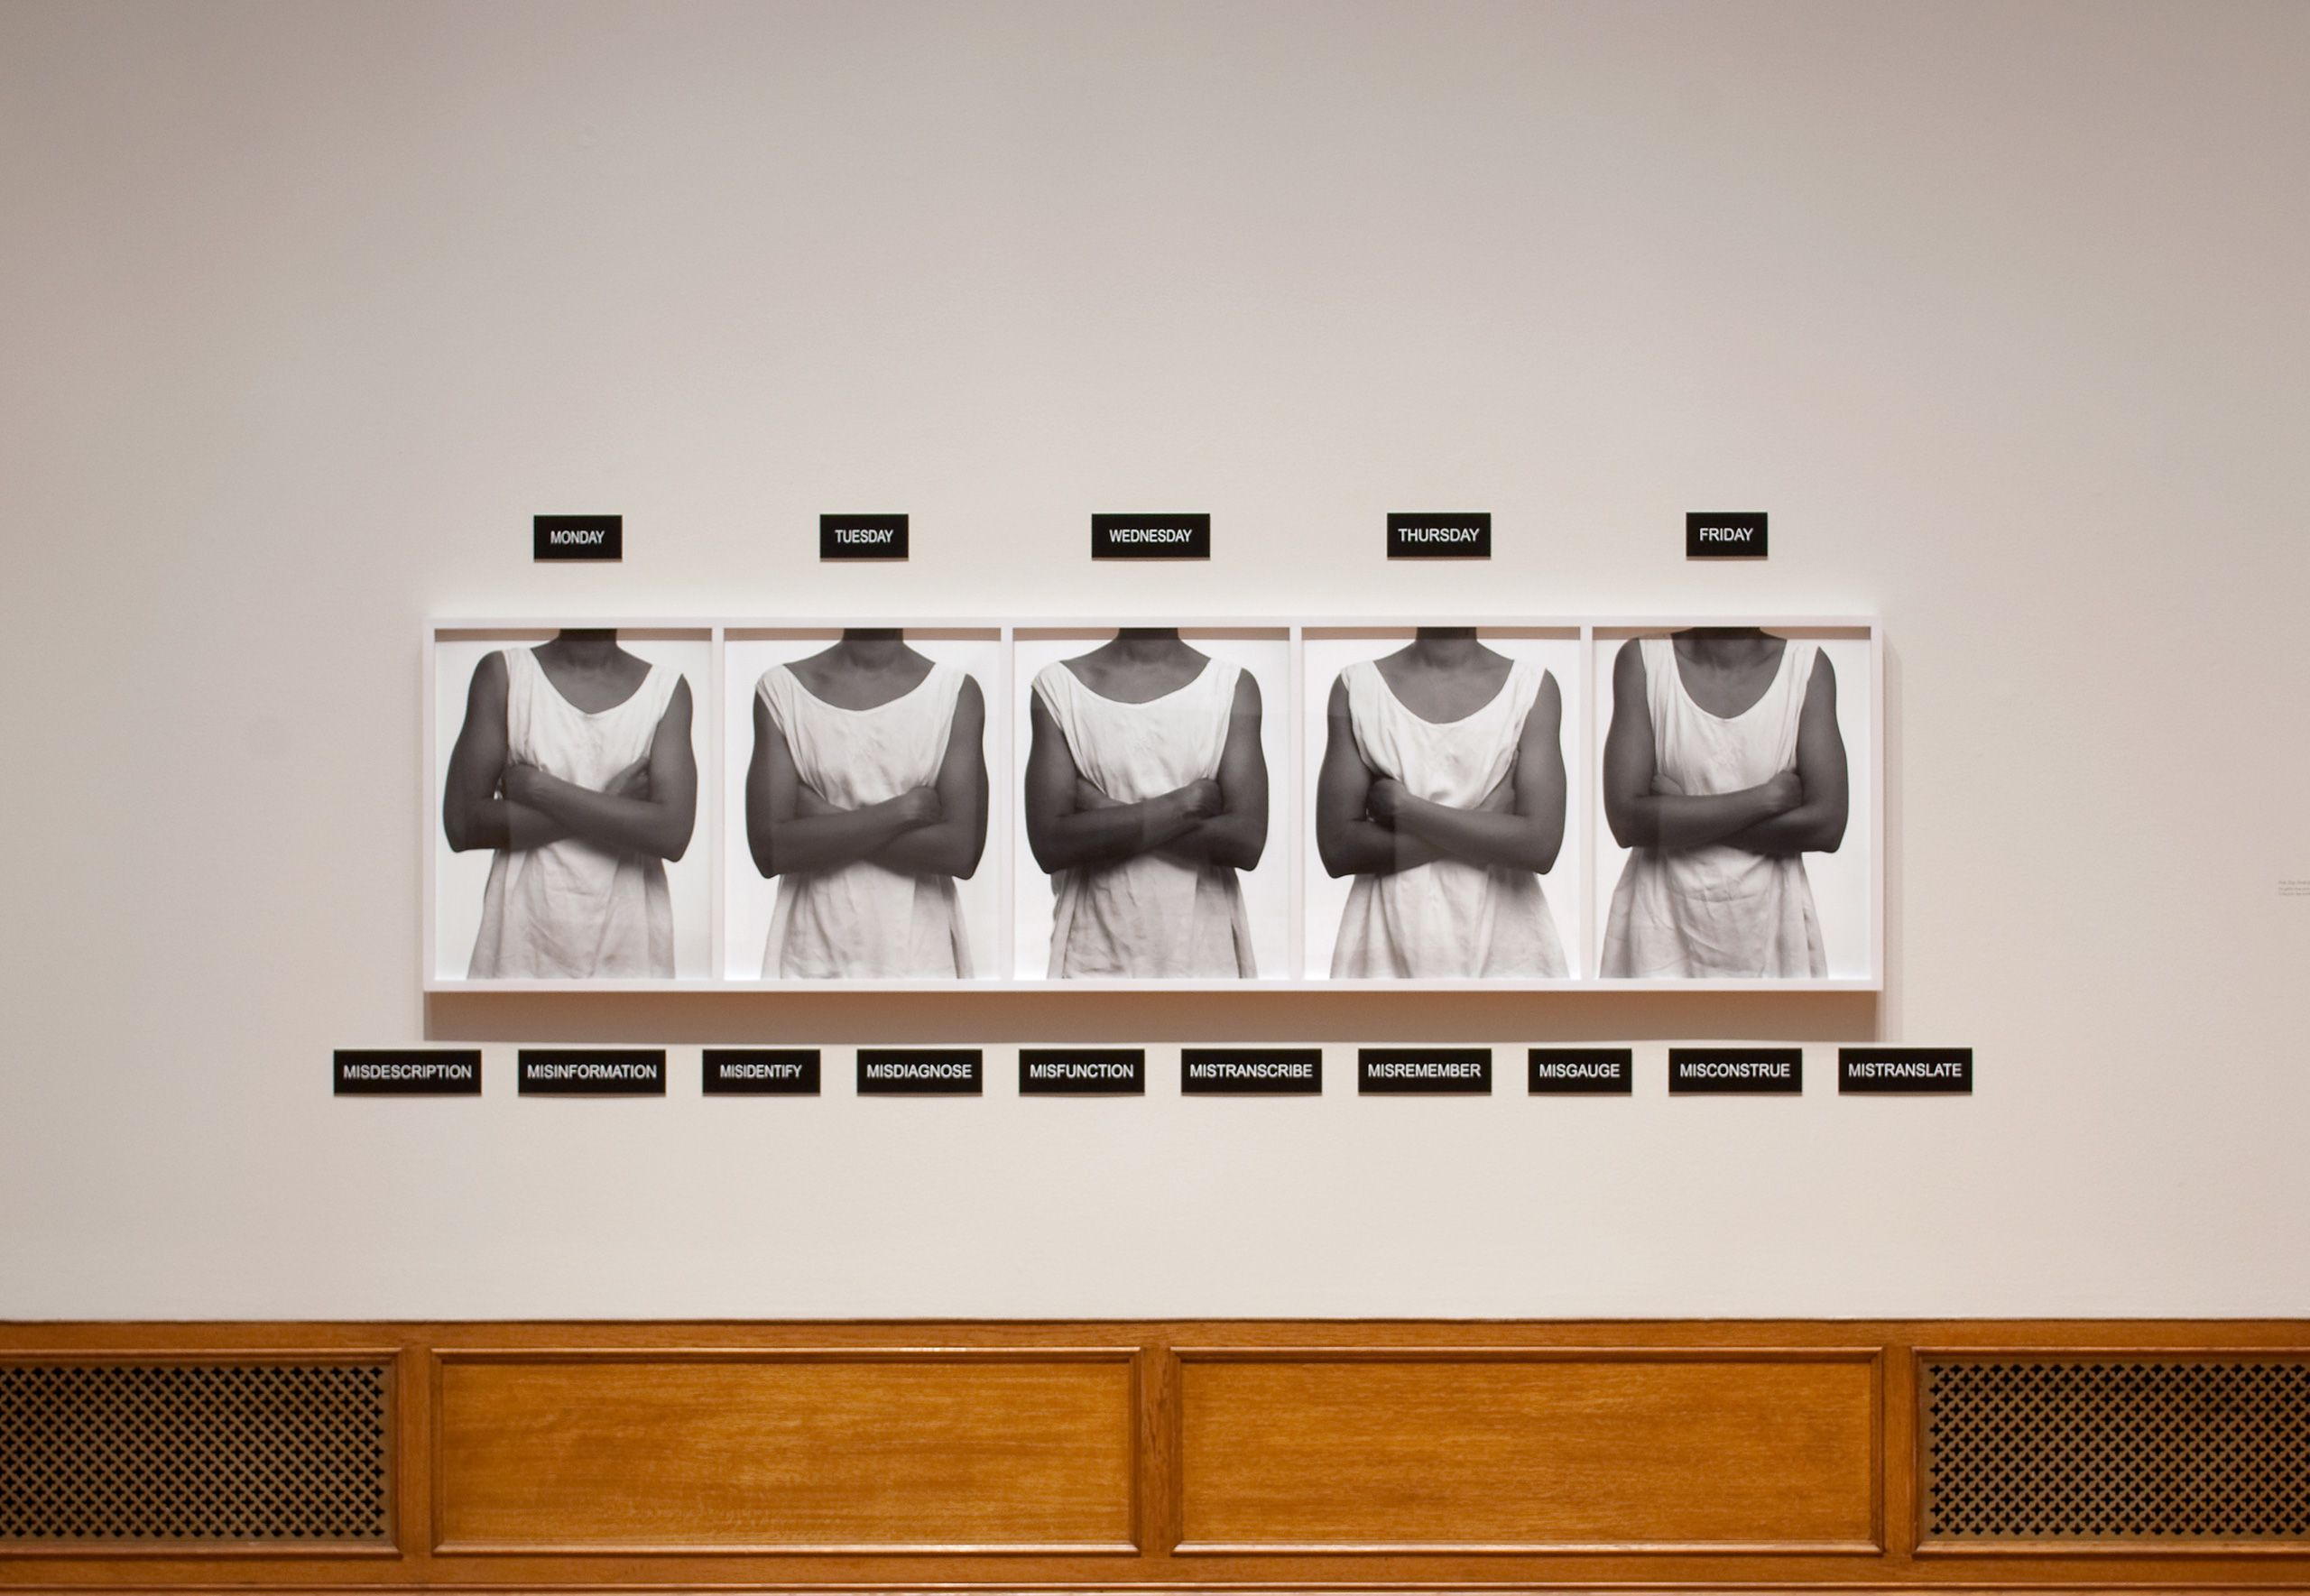 """Lorna Simpson"", Addison Gallery of American Art, Andover, MA 2014-16"